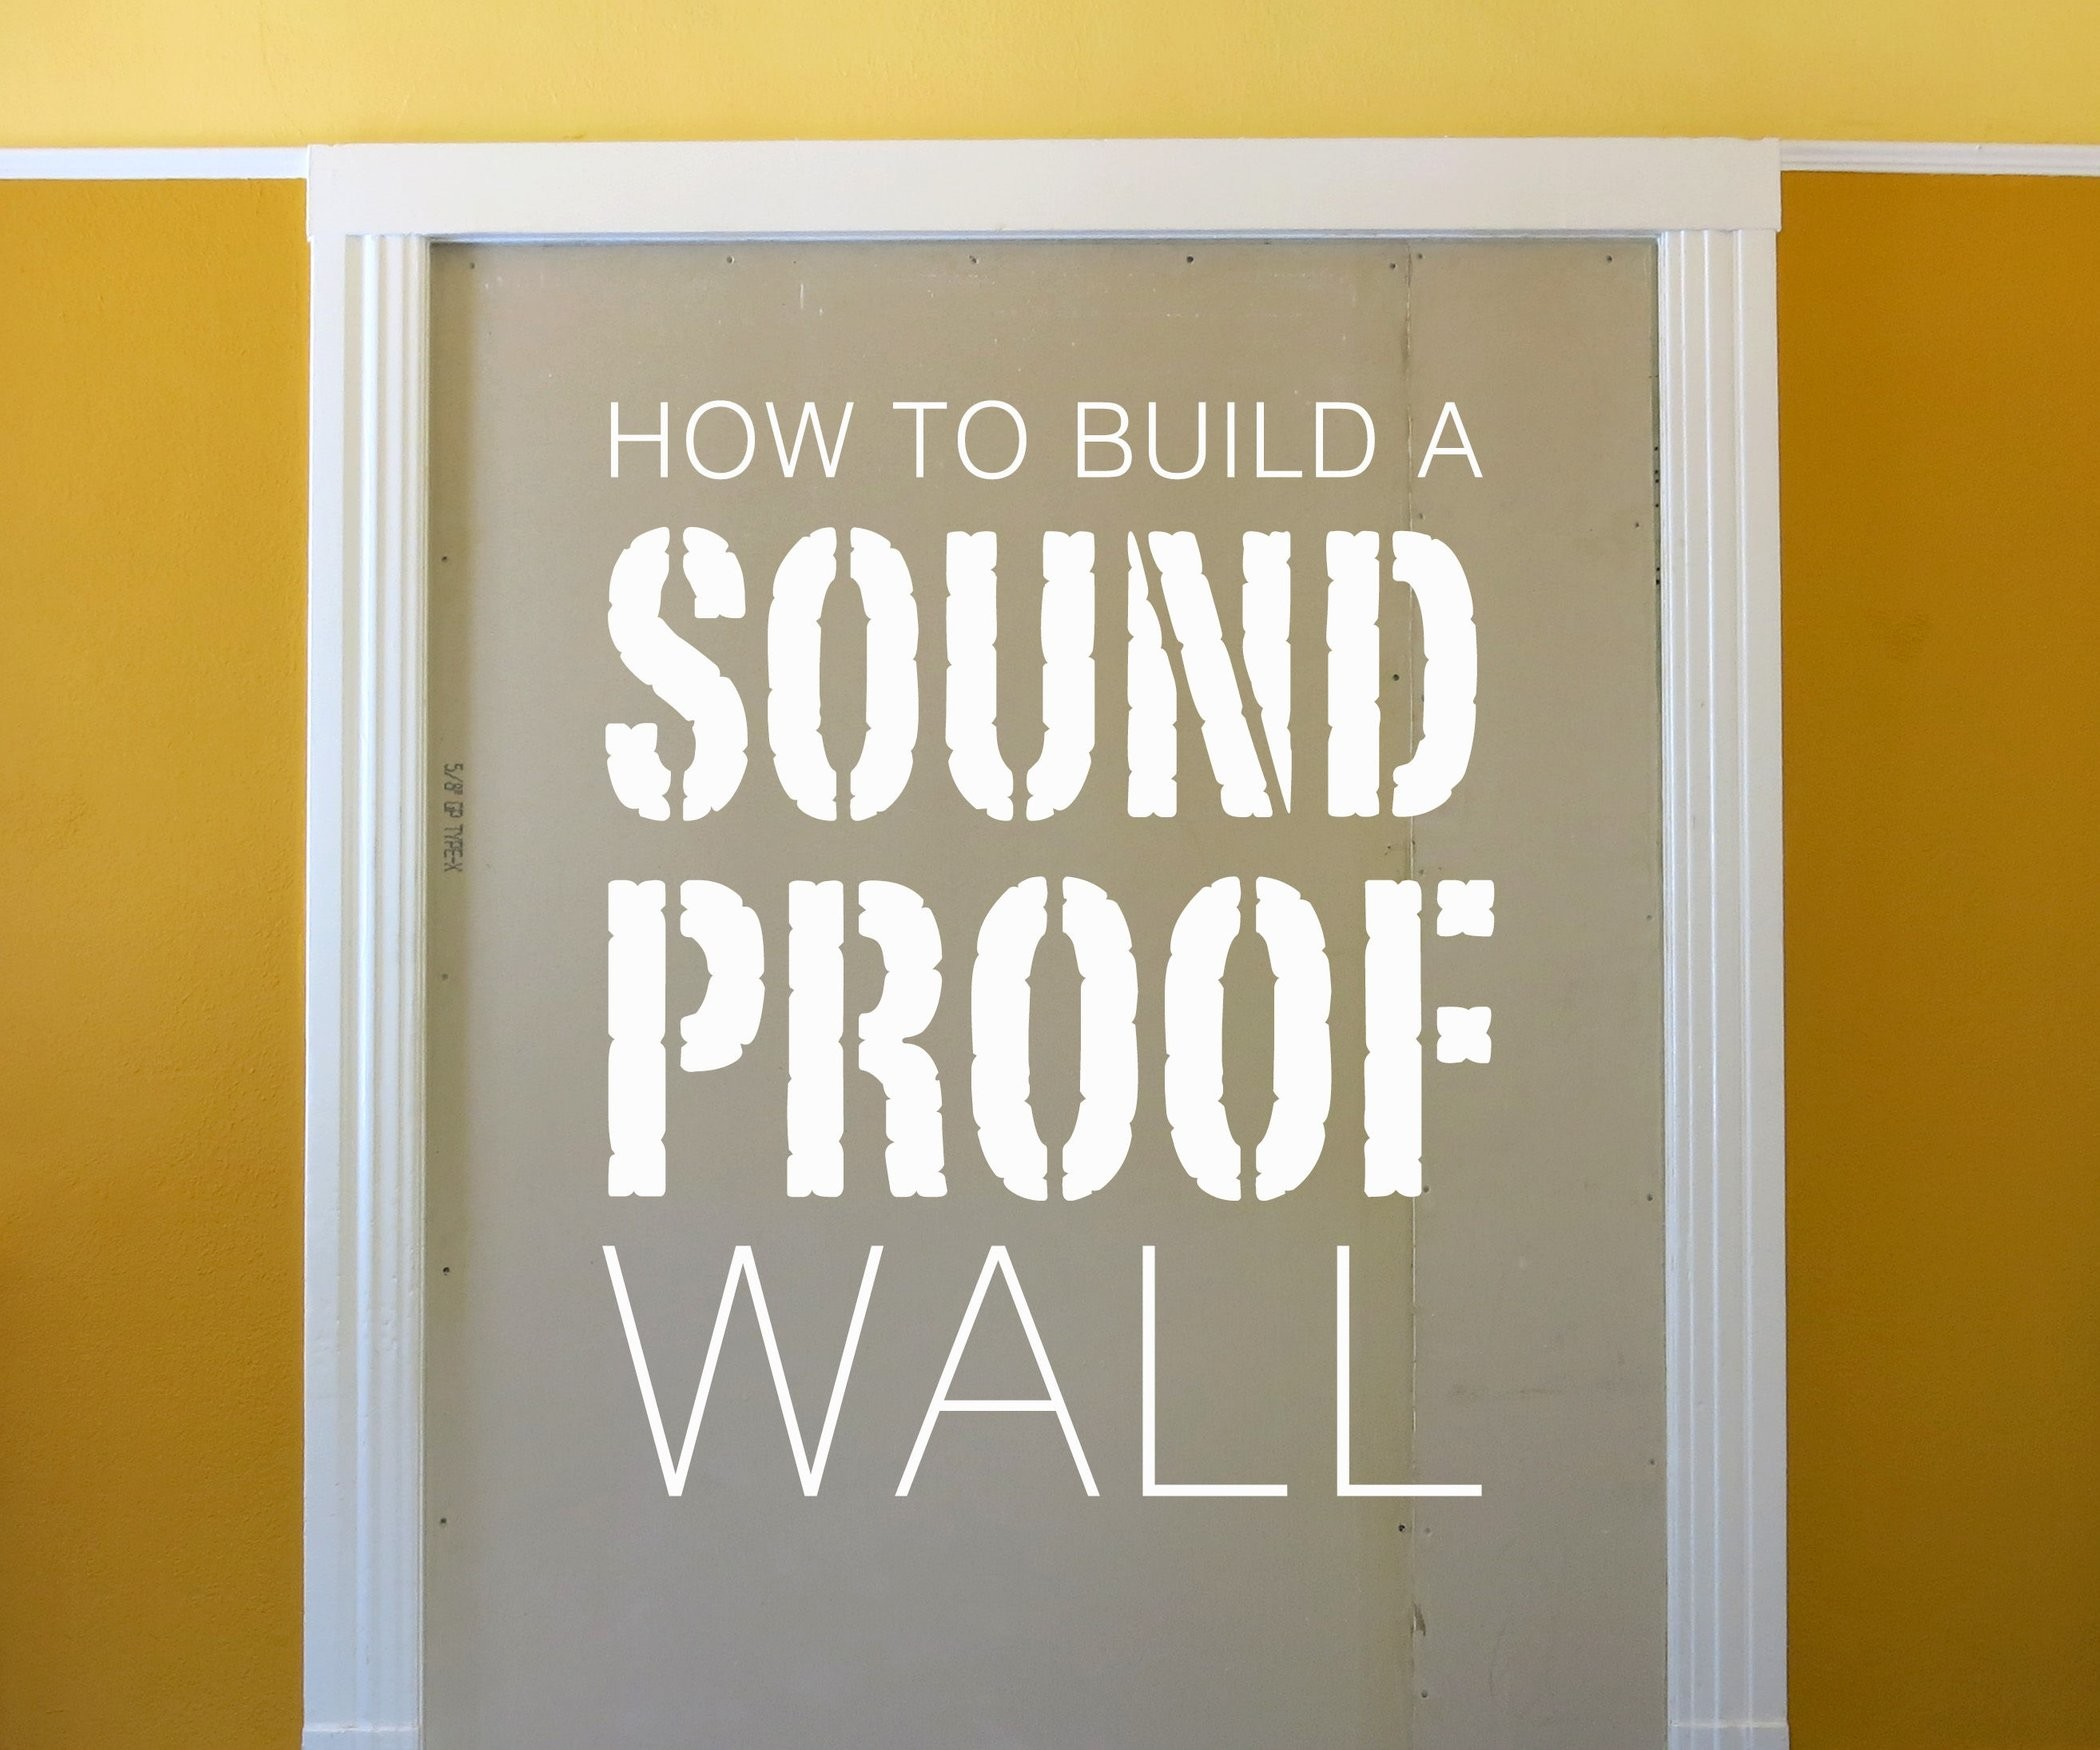 2100x1750 Build a Soundproof Wall